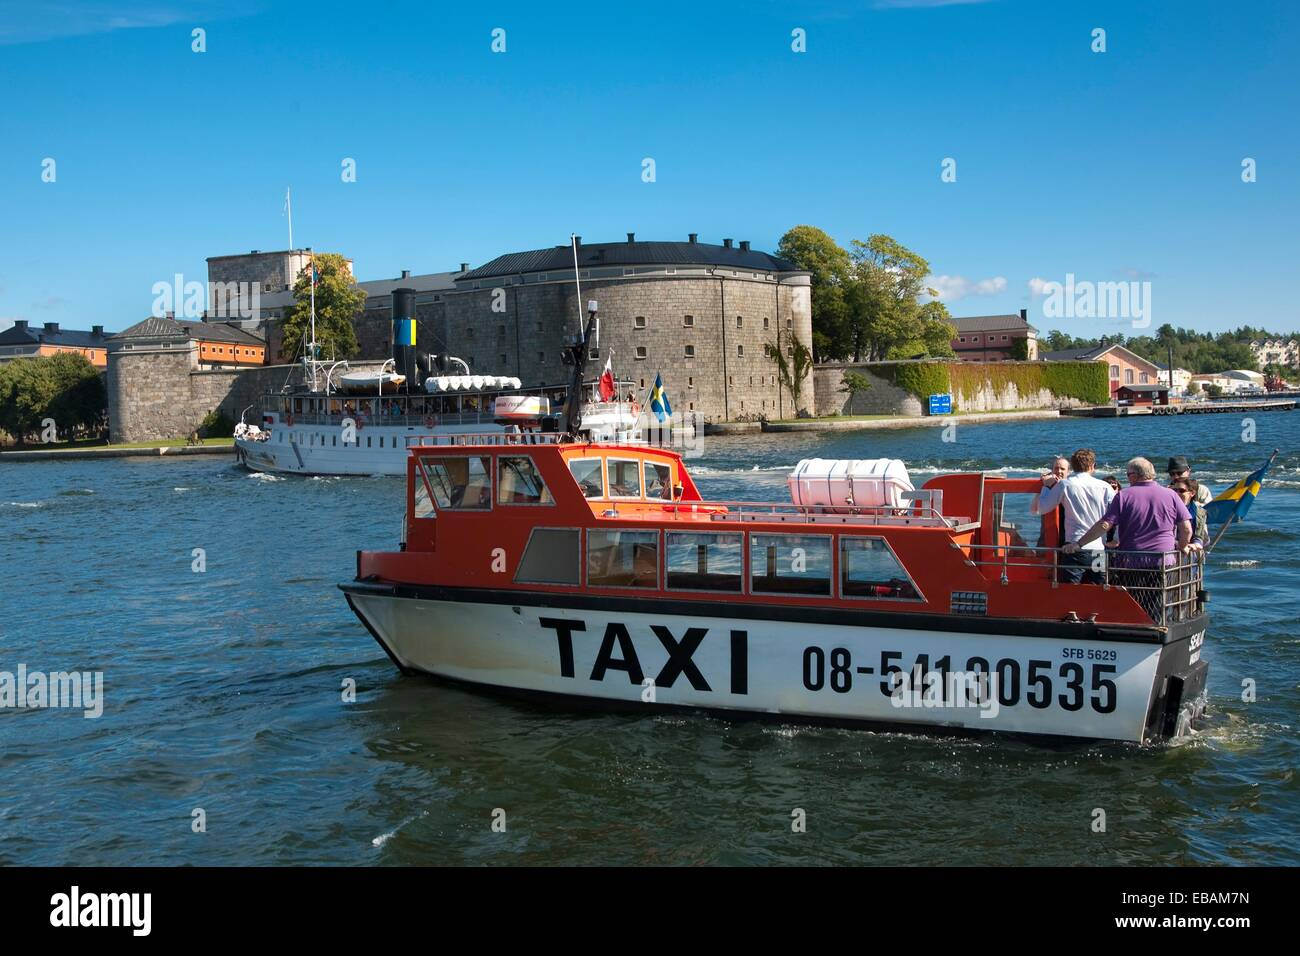 Worter Taxi,Waxholm,Stockholm Stock Photo